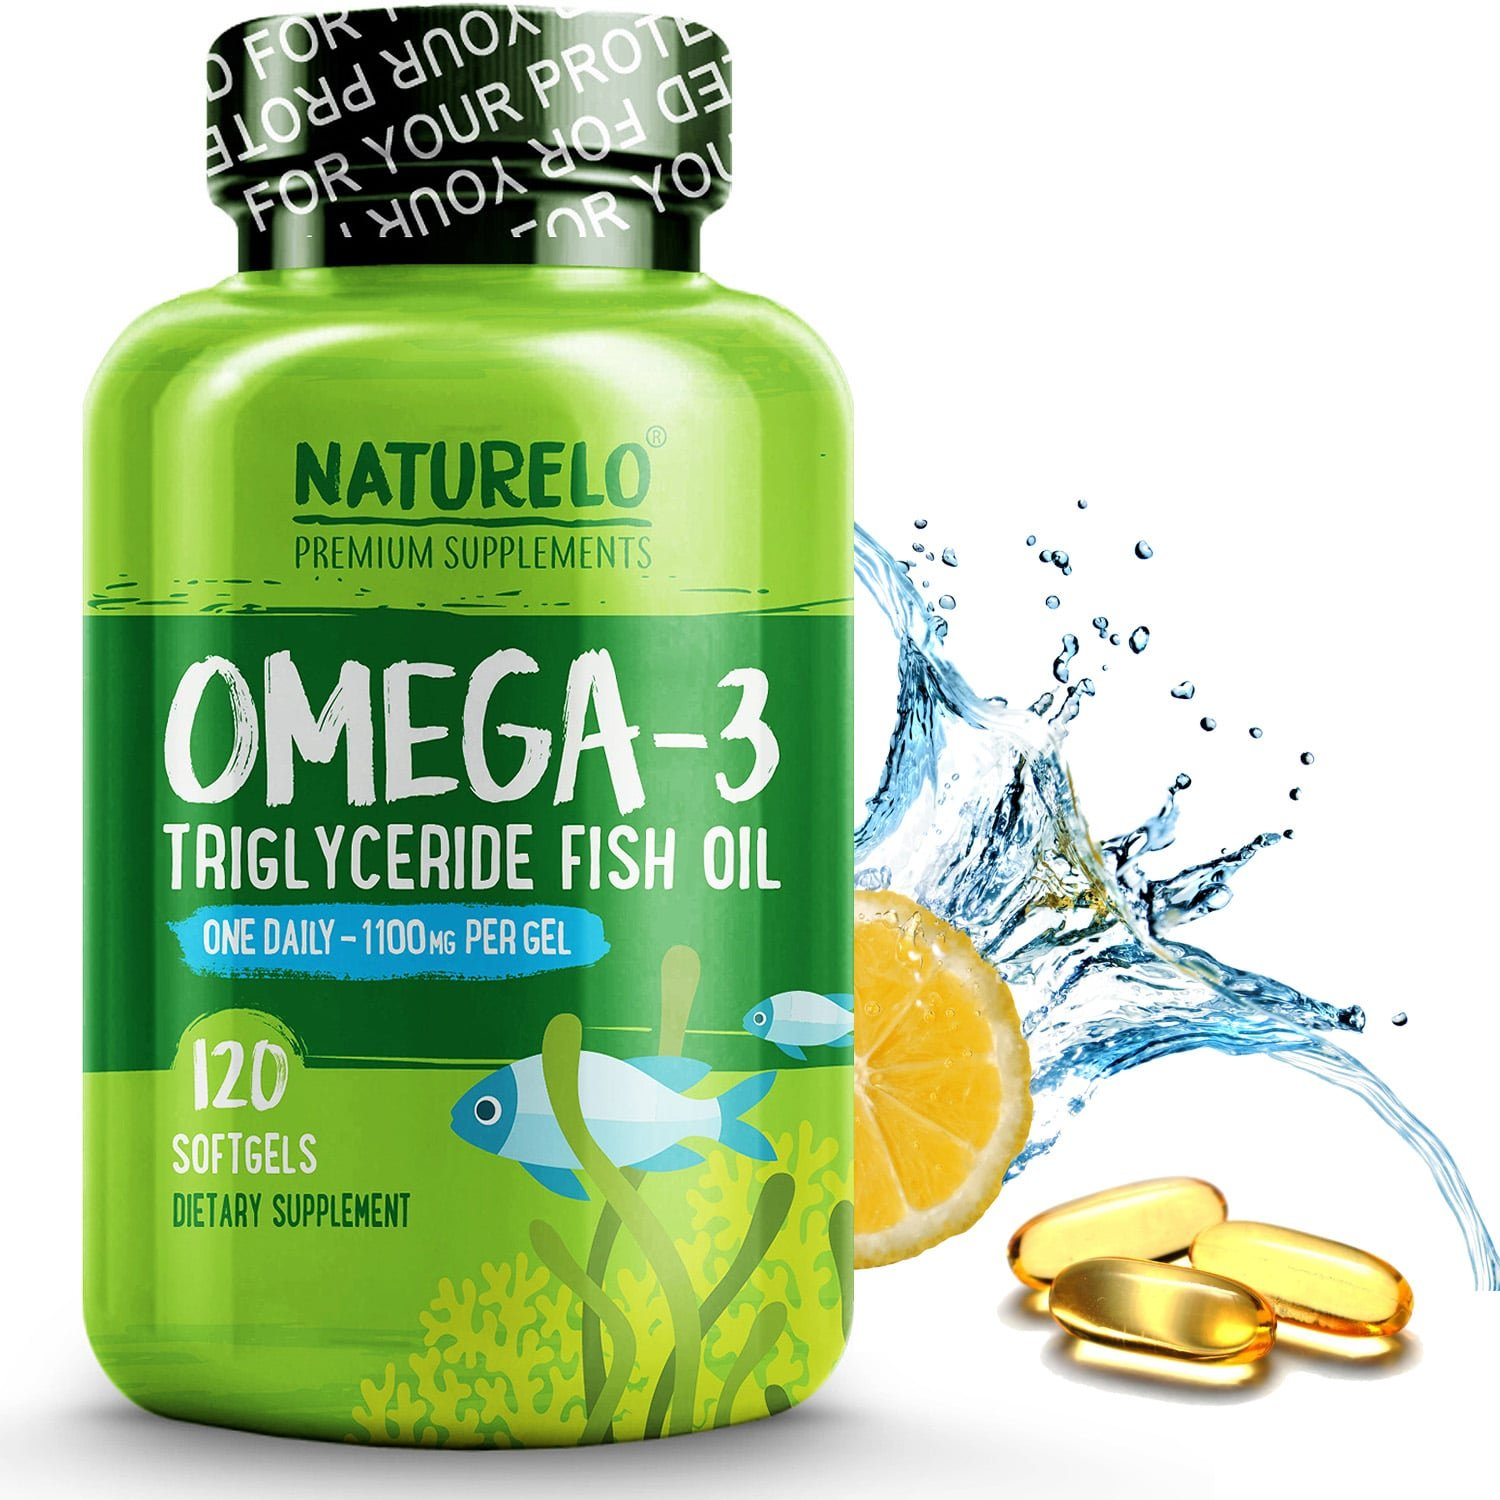 NATURELO Premium Fish Oil Supplement - 1100mg Triglyceride Omega-3 - One A Day - Best For Heart, Eye, Brain & Joint Health - 120 Softgels | 4 Month Supply